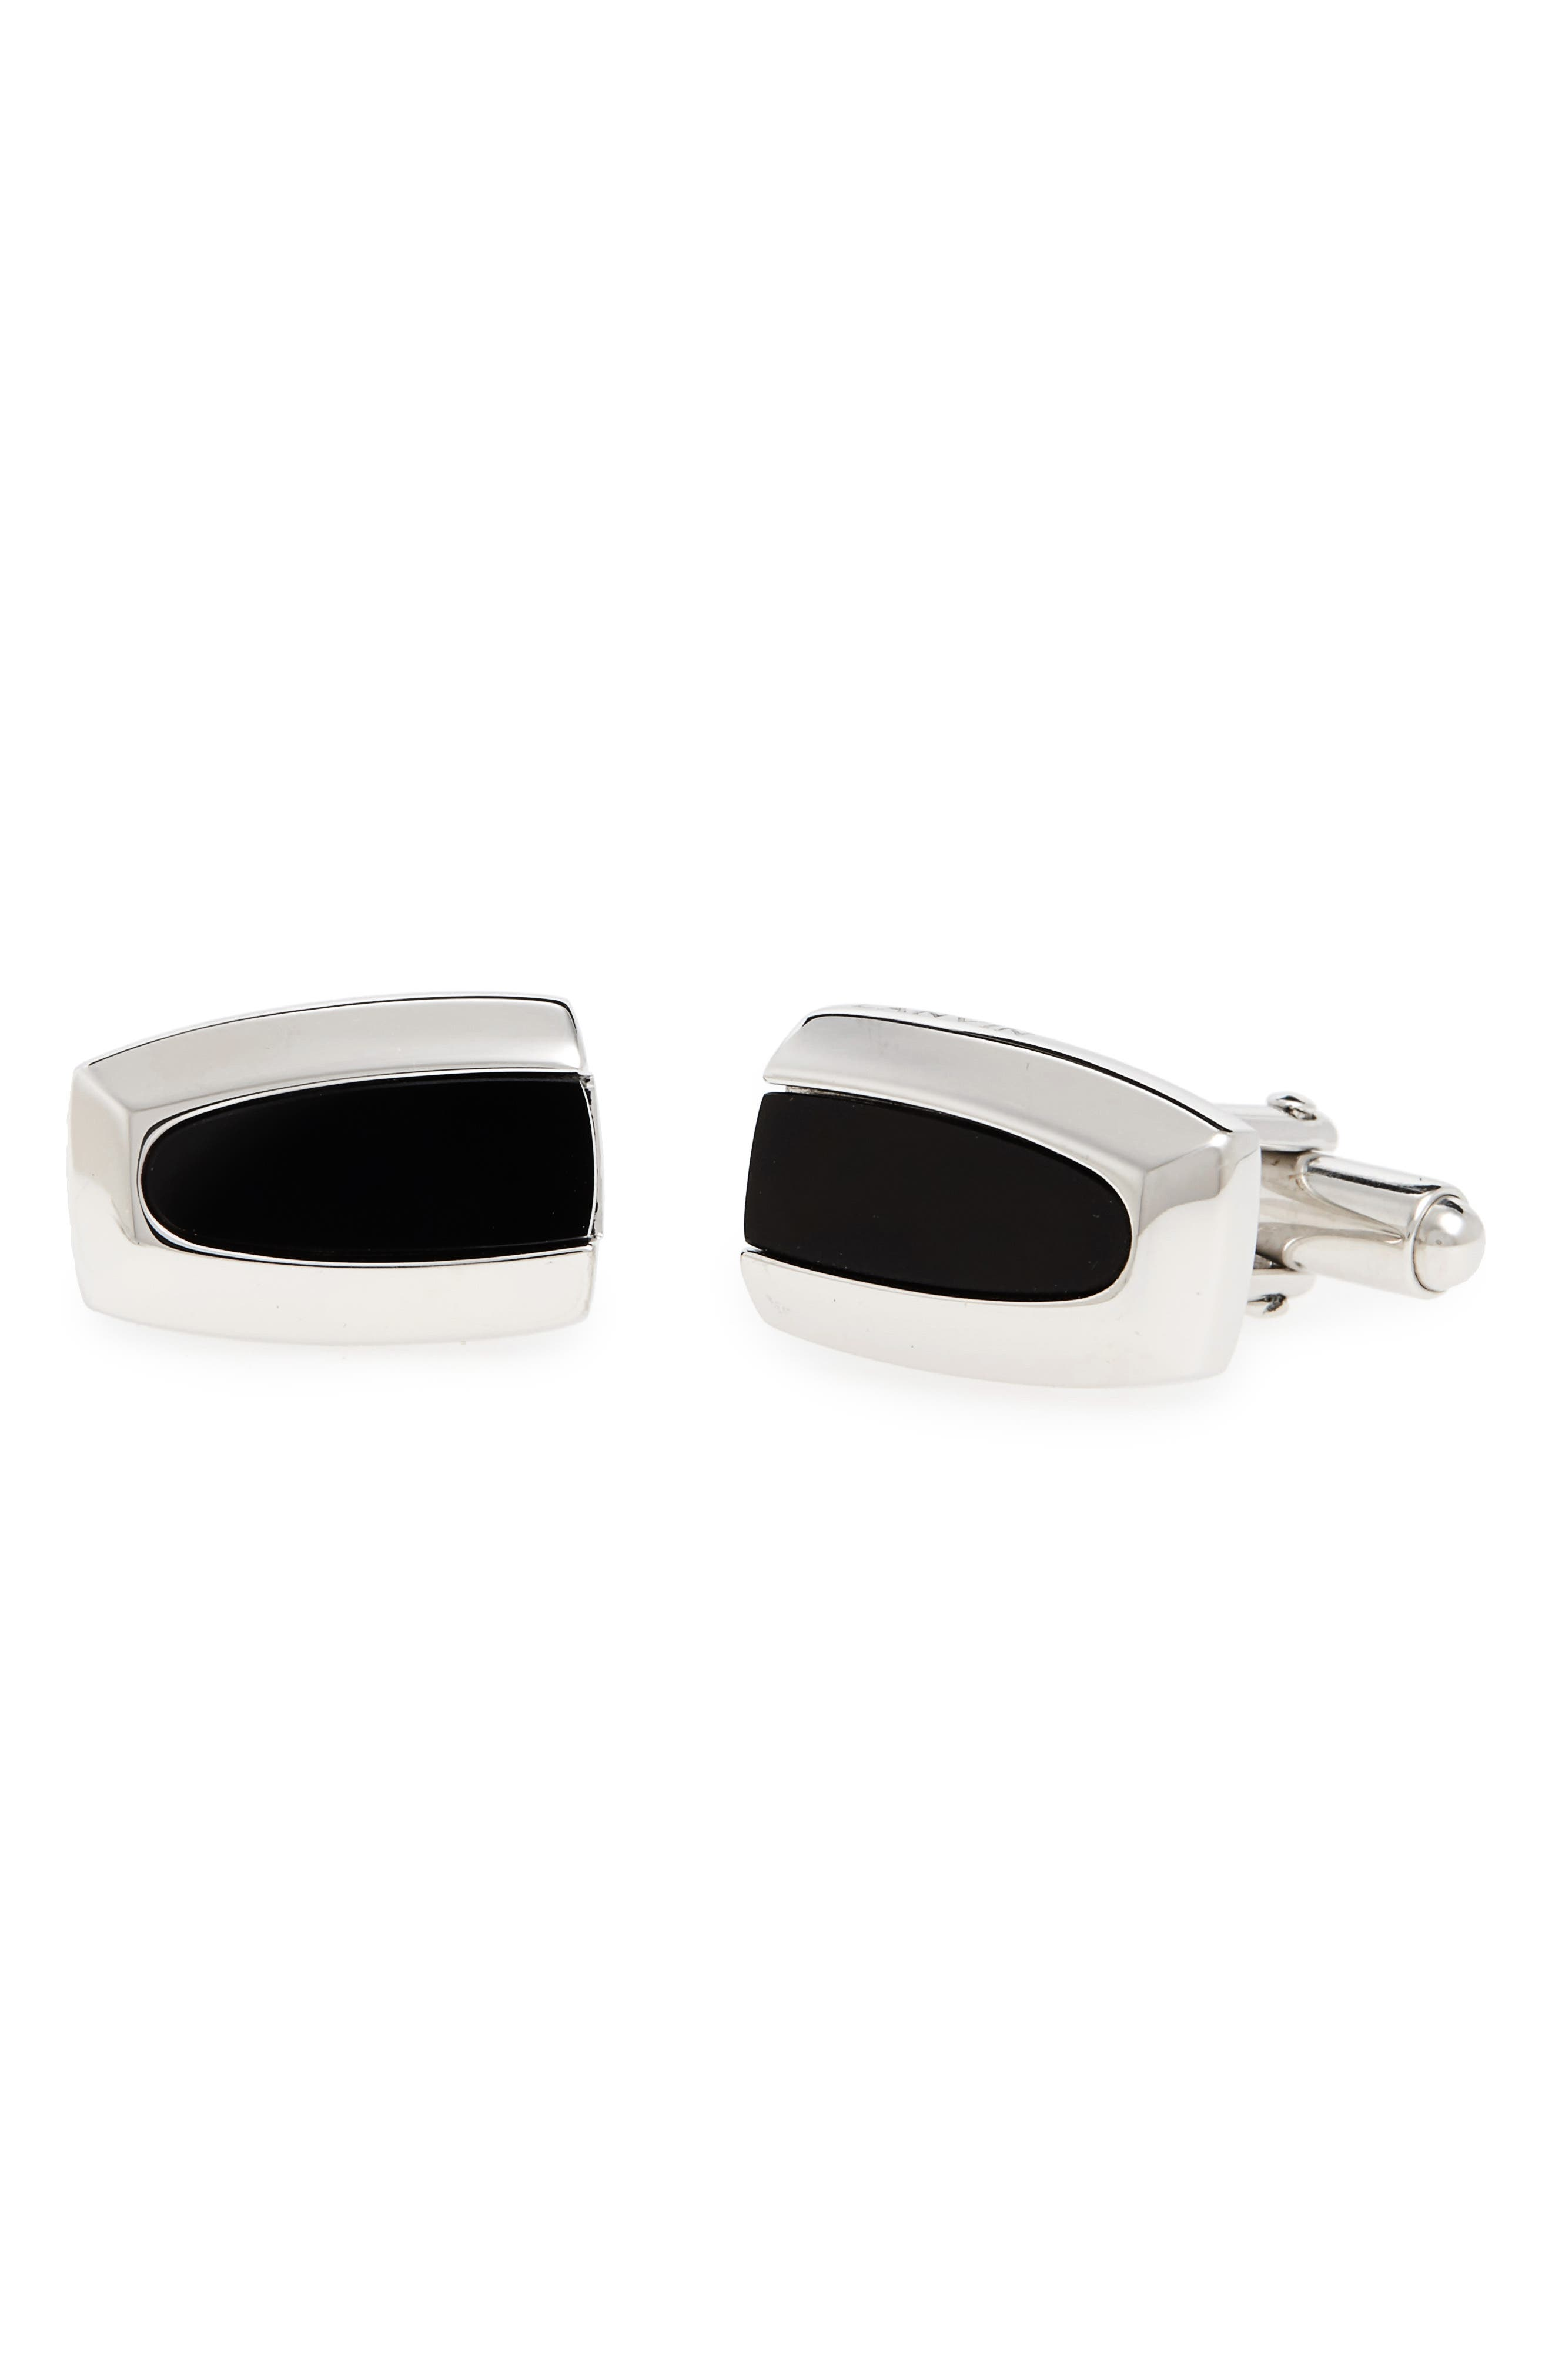 Onyx Cuff Links,                             Main thumbnail 1, color,                             040